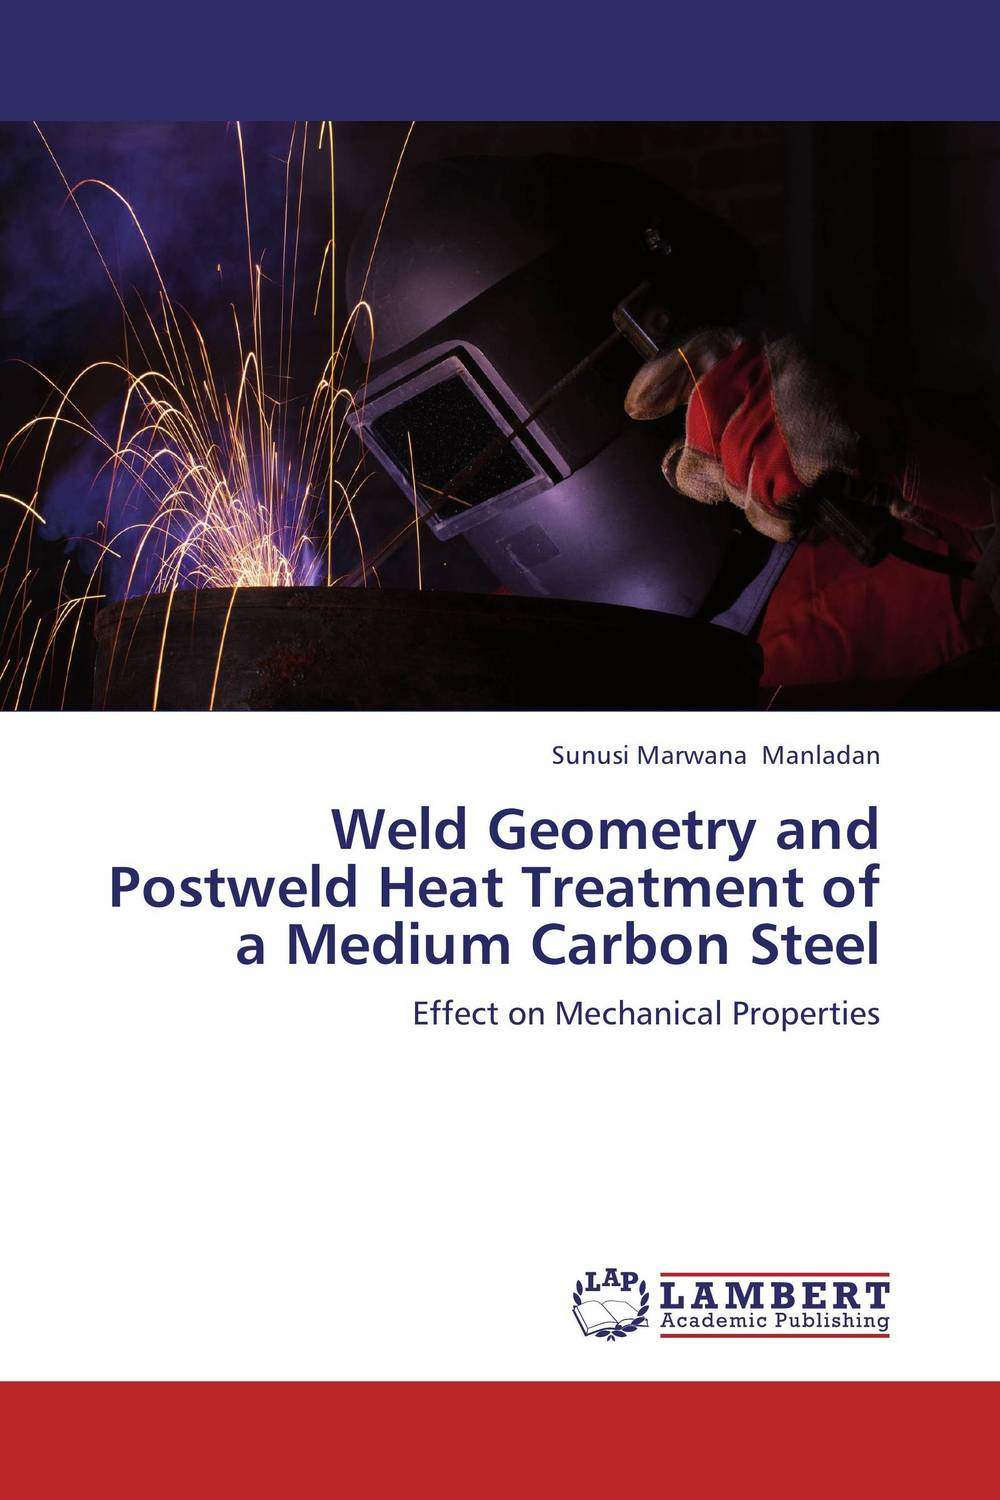 Weld Geometry and Postweld Heat Treatment of a Medium Carbon Steel scotch weld dp 490 в волгограде